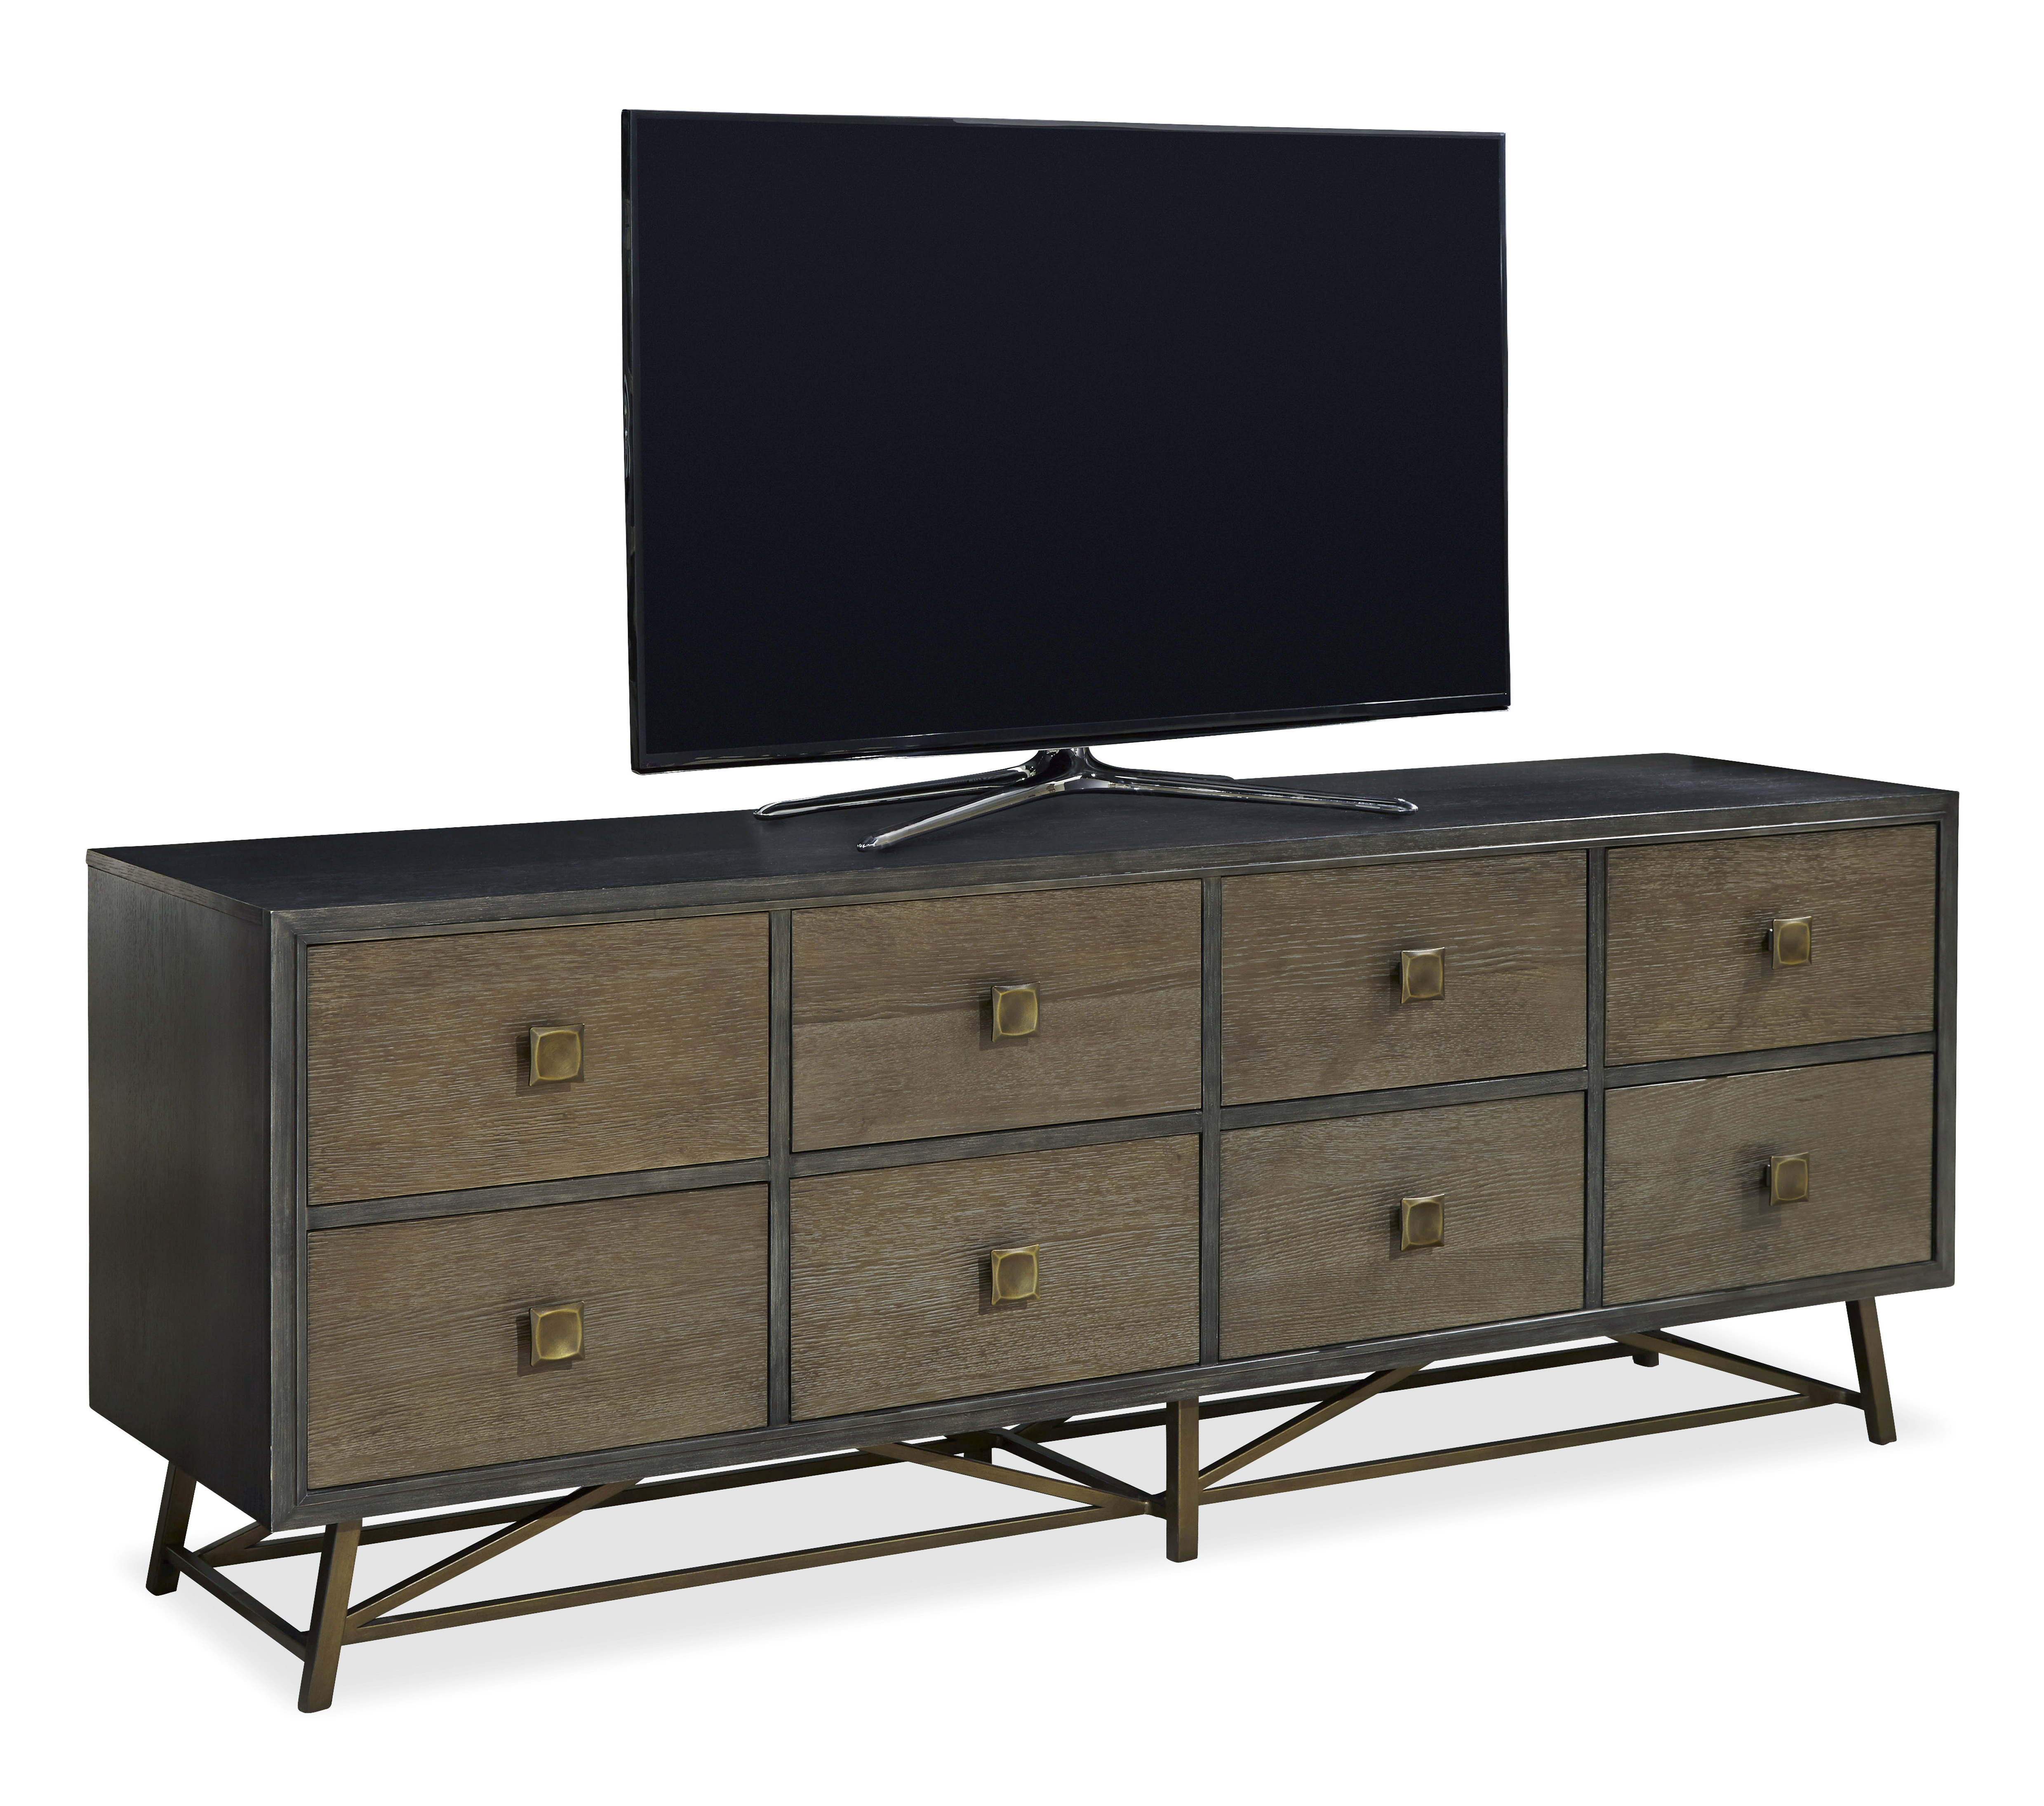 70 Inch Tv Stands | Joss & Main For Canyon 74 Inch Tv Stands (View 1 of 20)